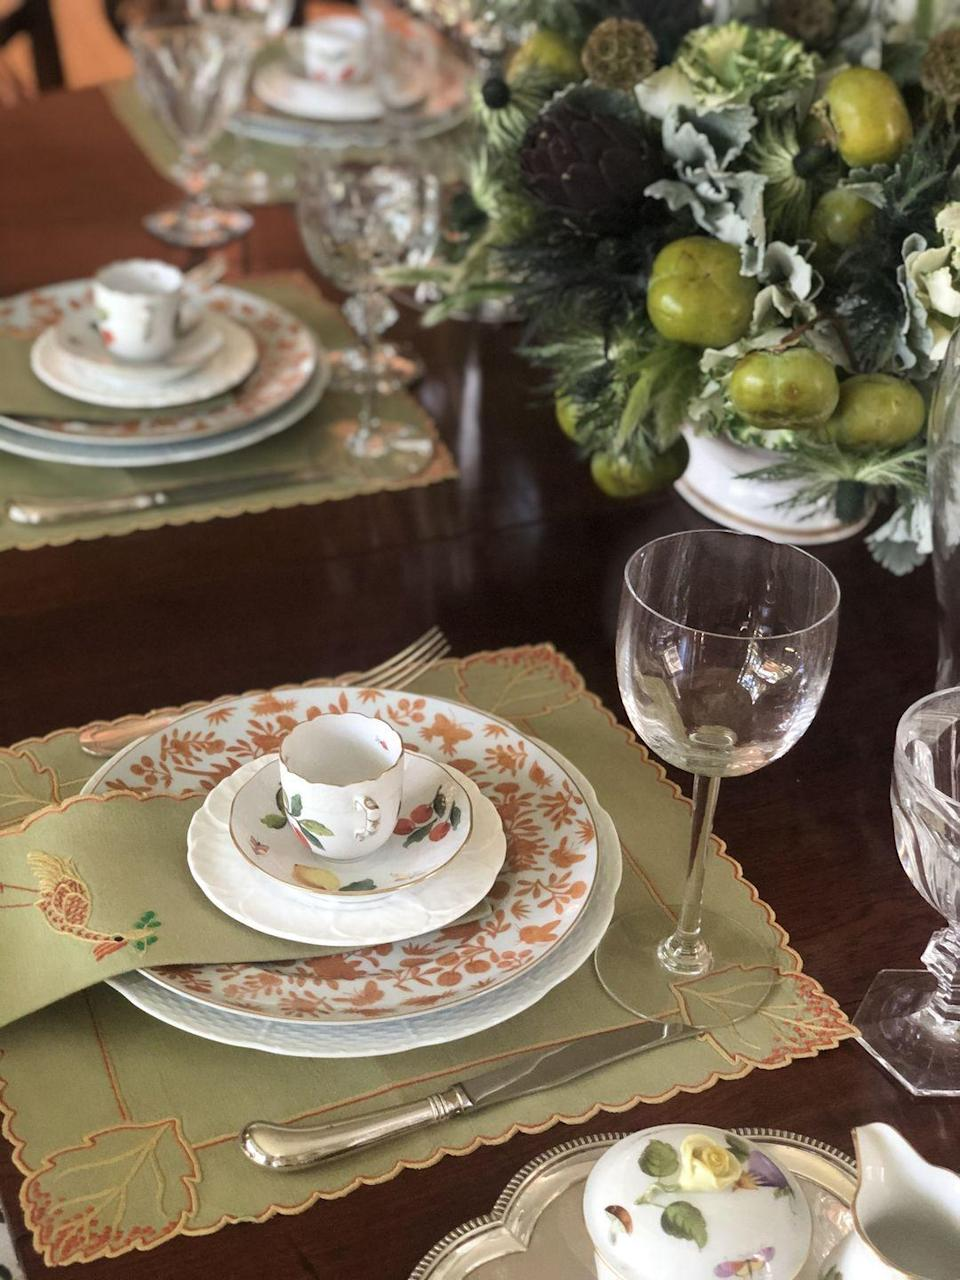 """<p>""""I am passionate about collecting linens, so I typically start there and then layer in pretty china, glassware, and silver, always mixing heirloom pieces with new-found objects,"""" says <a href=""""https://cathy-kincaid.com"""" rel=""""nofollow noopener"""" target=""""_blank"""" data-ylk=""""slk:Cathy Kincaid"""" class=""""link rapid-noclick-resp"""">Cathy Kincaid</a>, the Dallas-based interior designer known for her tailored <a href=""""https://www.veranda.com/home-decorators/a32166027/cathy-kincaid-connecticut-house-tour/"""" rel=""""nofollow noopener"""" target=""""_blank"""" data-ylk=""""slk:interiors"""" class=""""link rapid-noclick-resp"""">interiors</a>. """"Many of my linens are vintage, and I especially love <a href=""""https://dporthaultparis.com"""" rel=""""nofollow noopener"""" target=""""_blank"""" data-ylk=""""slk:D. Porthault"""" class=""""link rapid-noclick-resp"""">D. Porthault</a>, which are mostly designed to mix with one another. <a href=""""https://leontinelinens.com"""" rel=""""nofollow noopener"""" target=""""_blank"""" data-ylk=""""slk:Leontine Linens"""" class=""""link rapid-noclick-resp"""">Leontine Linens</a> are [another] favorite that I've been collecting for years.""""</p><p>Here, Kincaid mixes <a href=""""https://www.mottahedeh.com/sacred-bird-butterfly-5-piece-place-setting.html"""" rel=""""nofollow noopener"""" target=""""_blank"""" data-ylk=""""slk:Mottahedeh's Sacred Bird pattern"""" class=""""link rapid-noclick-resp"""">Mottahedeh's Sacred Bird pattern</a> with hand-painted Herring teacups (for the soup course!) and vintage Edgewood cabbageware for a multidimensional look. Clean lines on the stemware play nicely with the more detailed placemats and napkins by <a href=""""https://juliab.com"""" rel=""""nofollow noopener"""" target=""""_blank"""" data-ylk=""""slk:Julia B"""" class=""""link rapid-noclick-resp"""">Julia B</a>. The final touches that Kincaid swears by? """"For Thanksgiving, I would only use flowers and vegetables that would be bountiful at that special time of year,"""" she says. """"On this table, we placed heirloom silver candlesticks inside glass hurricane lamps, which is something I love doing.""""</p>"""